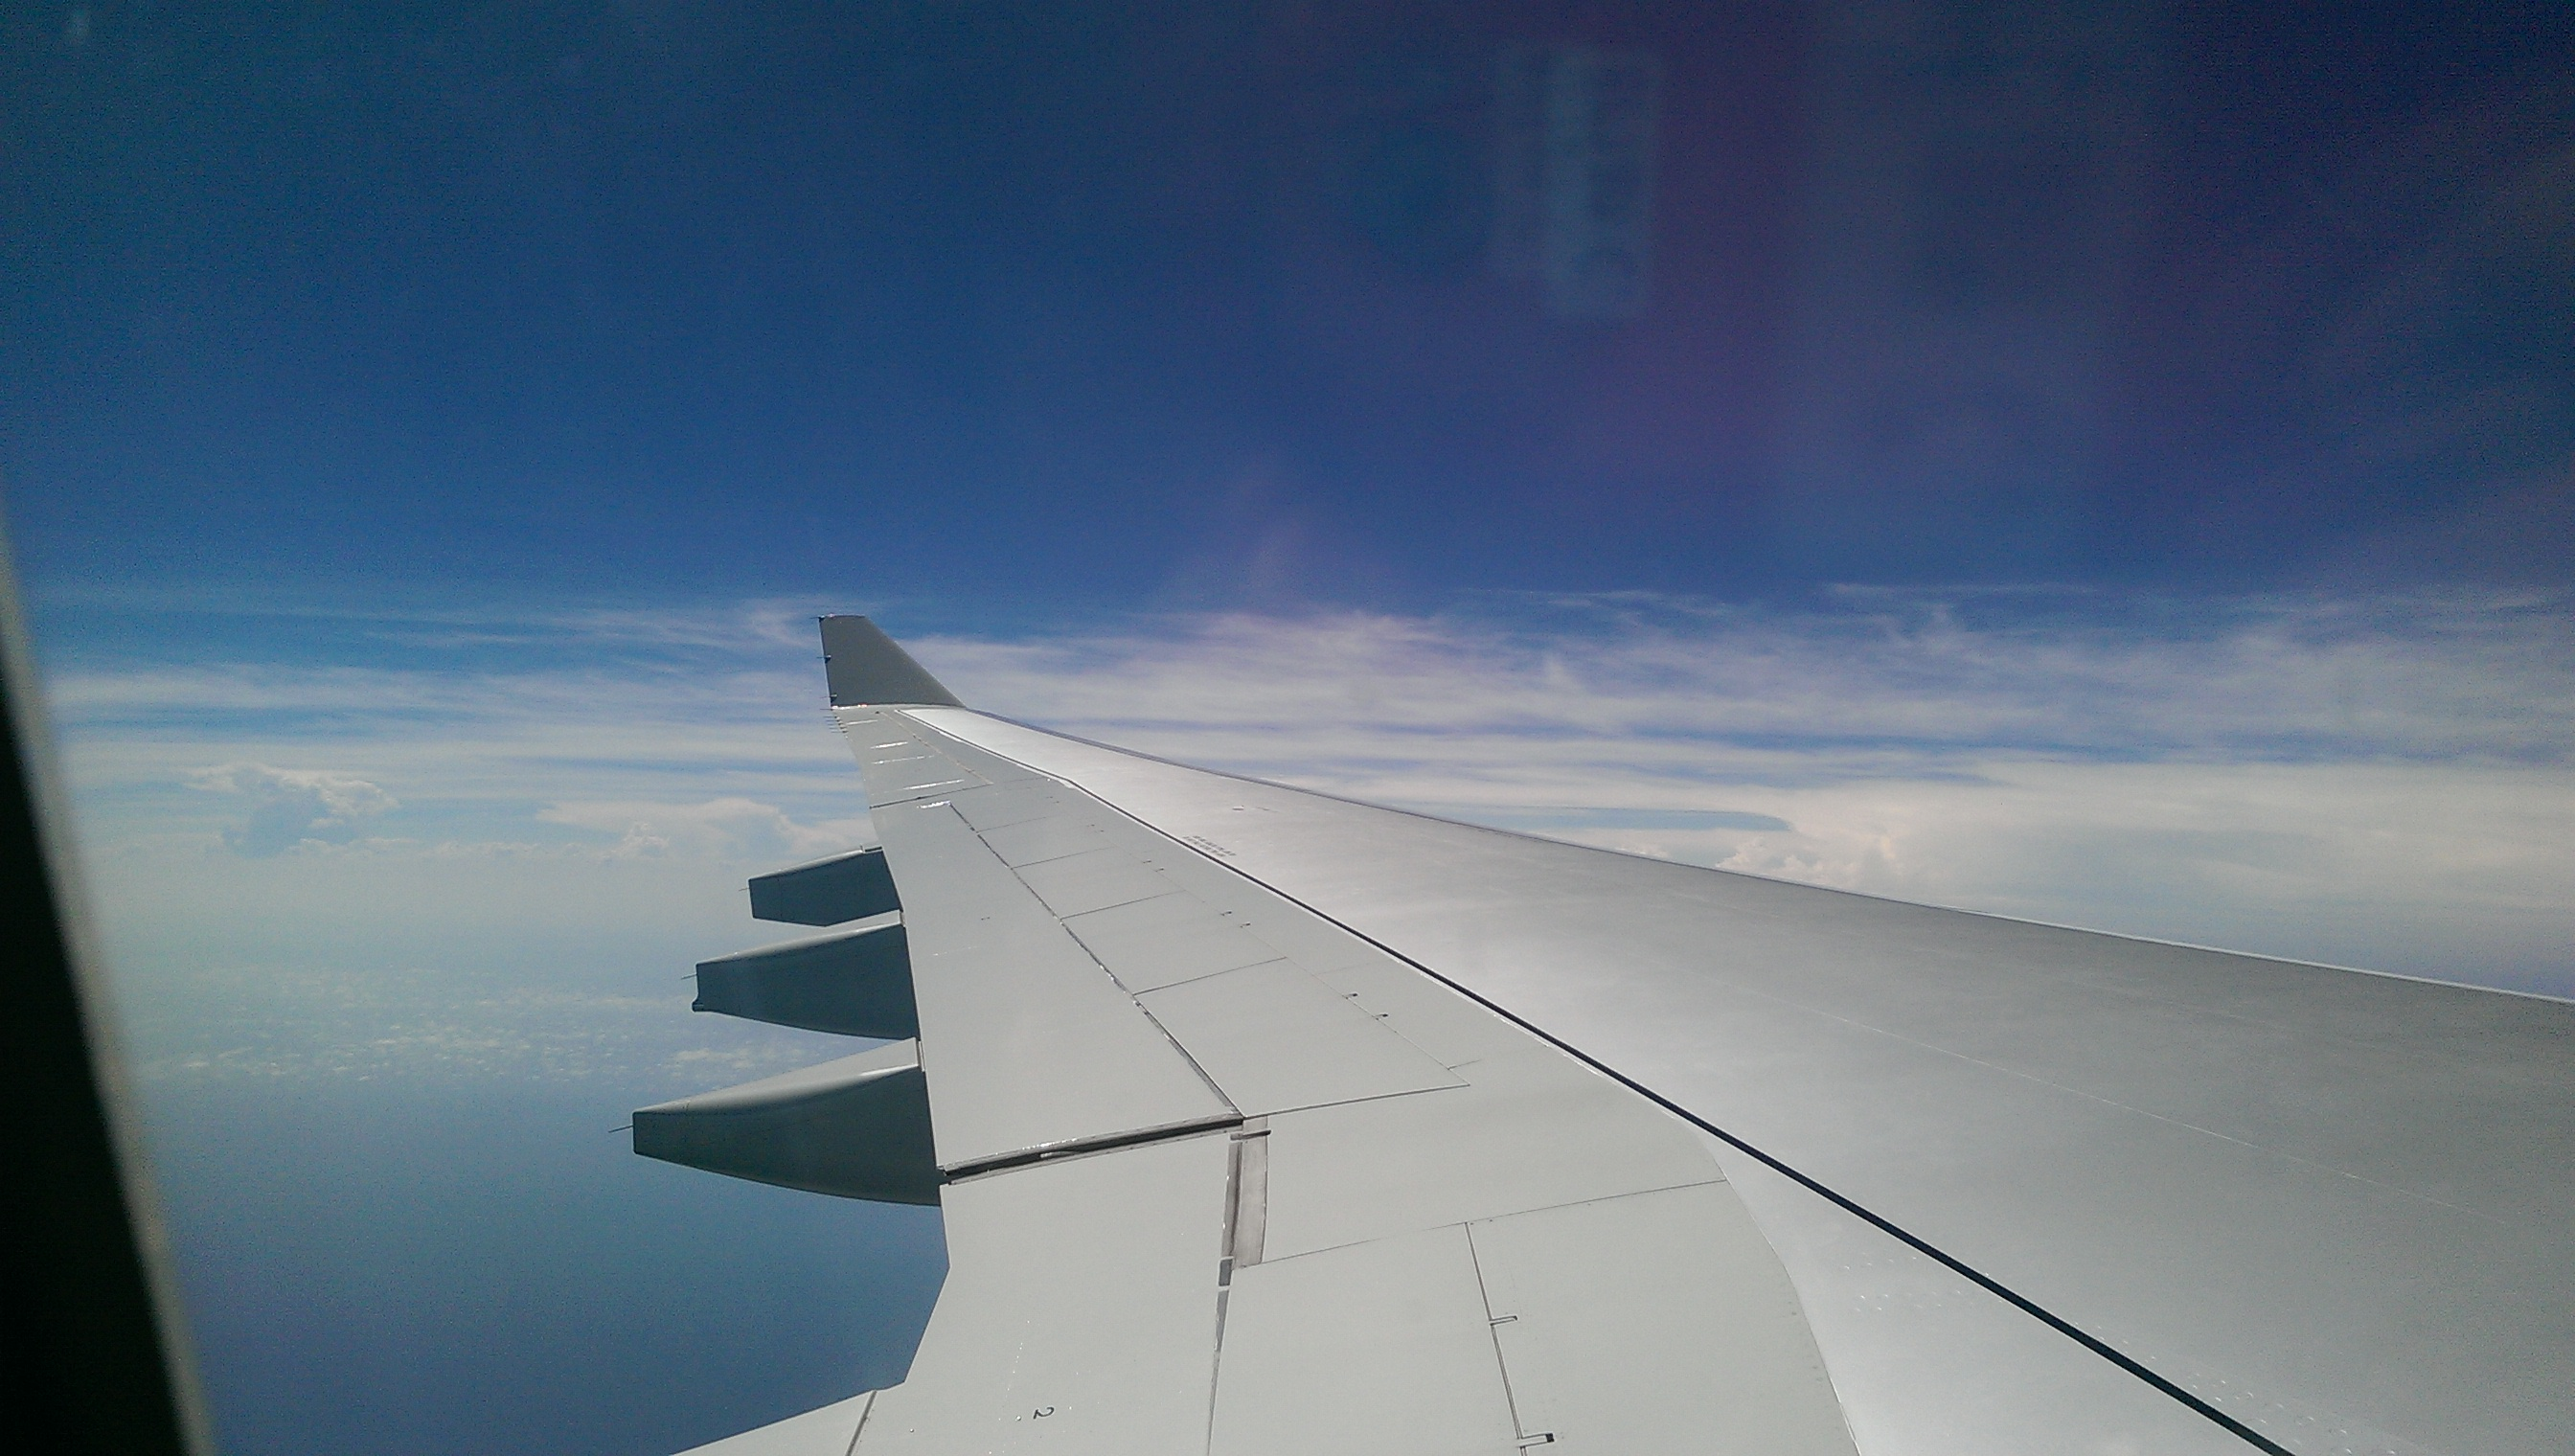 [View of airplane wing and clouds from airplane]